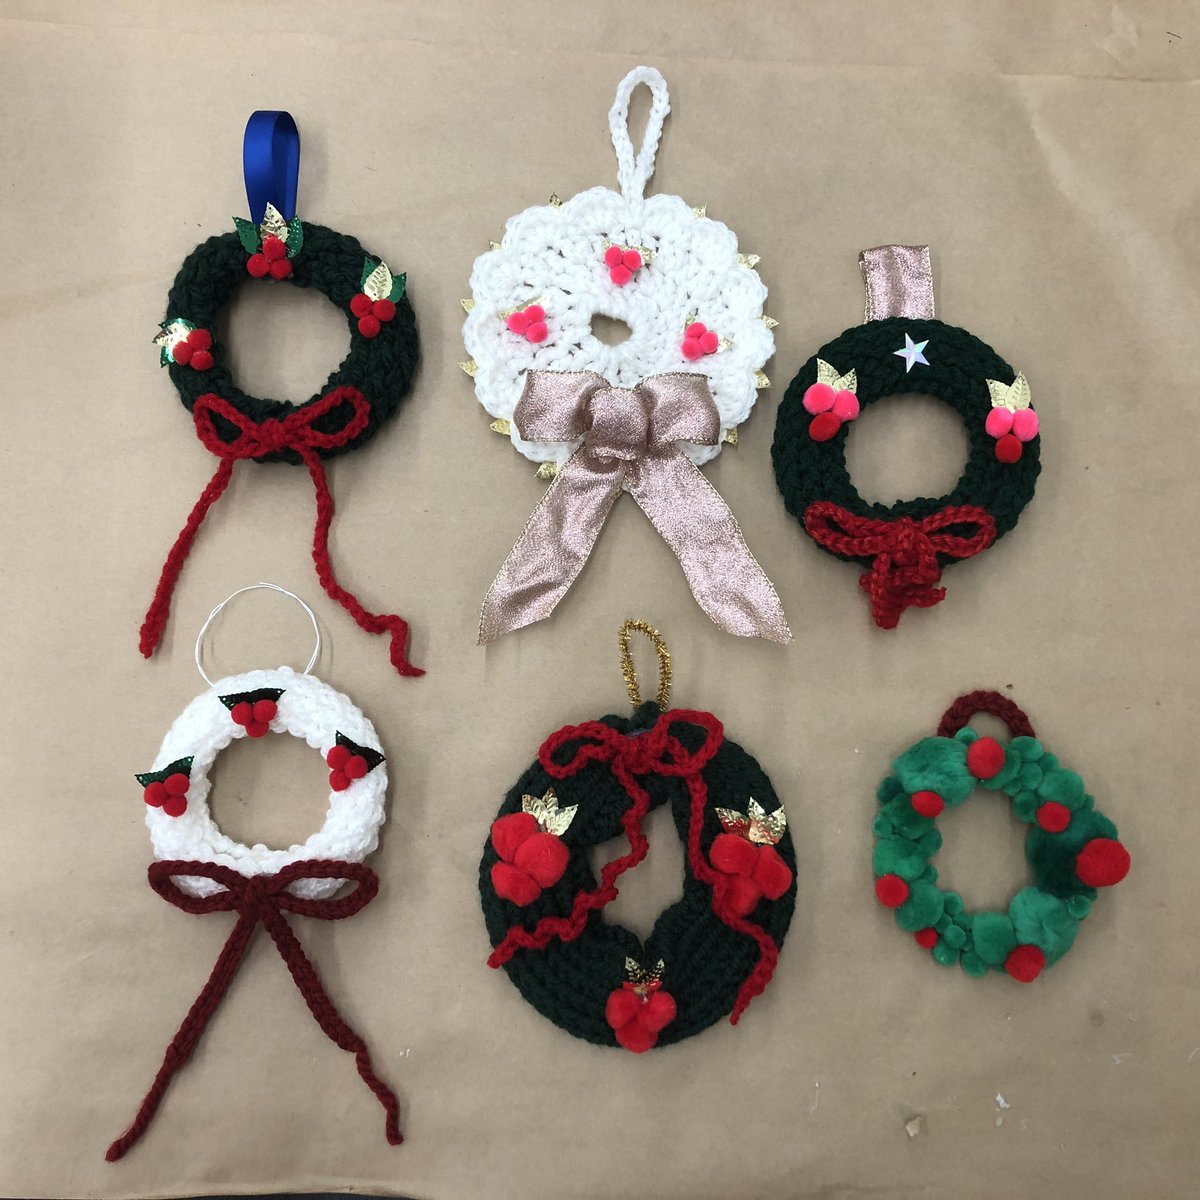 Wreath making last night in our class @MichaelsStores #makeitwithmichaels #loom #crochet #bows #handmade #communityclasspic.twitter.com/cJ2nzyYo5T – at Michaels